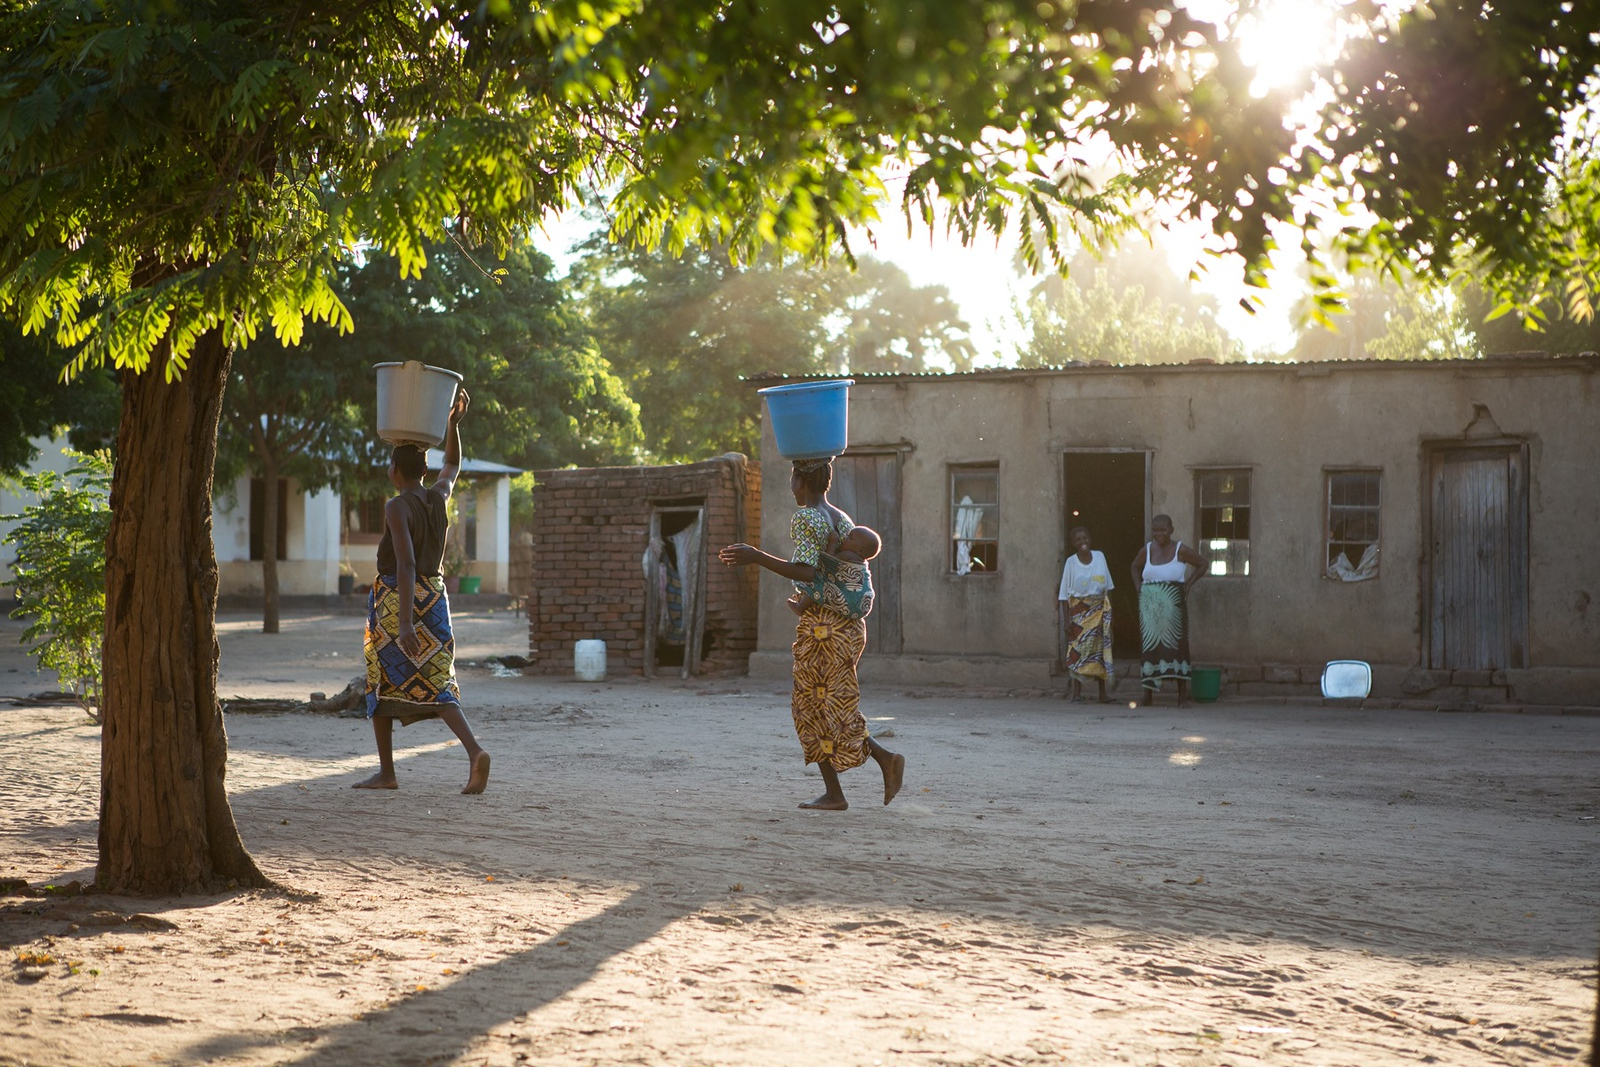 Women walk through their community carrying water buckets. Read more about how women and girls are affected by water access: https://www.waterforpeople.org/stories/girls